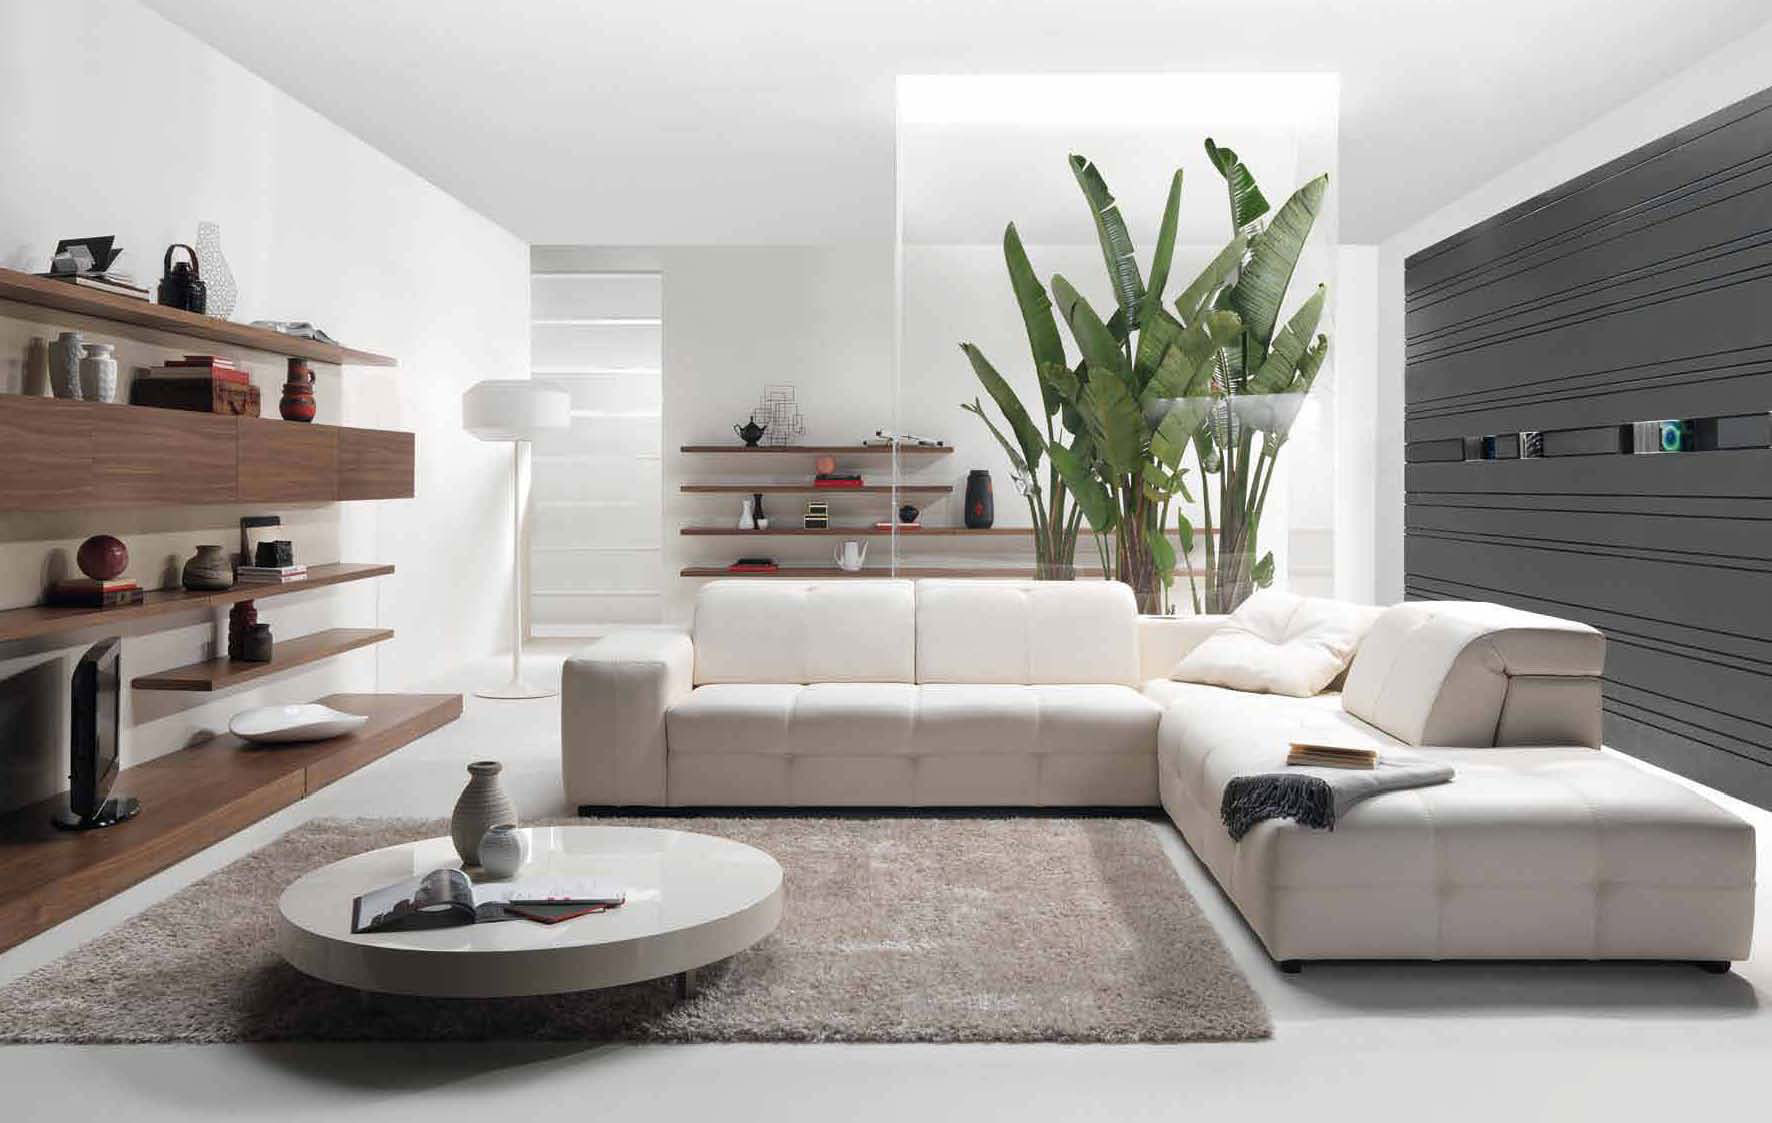 25 Best Modern Living Room Designs. Paint Techniques For Kitchen Cabinets. Home Depot Unfinished Kitchen Cabinets. Ikea Kitchen White Cabinets. Glass Panel Kitchen Cabinet Doors. Black Shaker Kitchen Cabinets. Types Of Wood For Kitchen Cabinets. Bargain Kitchen Cabinets. Ikea Cabinets Kitchen